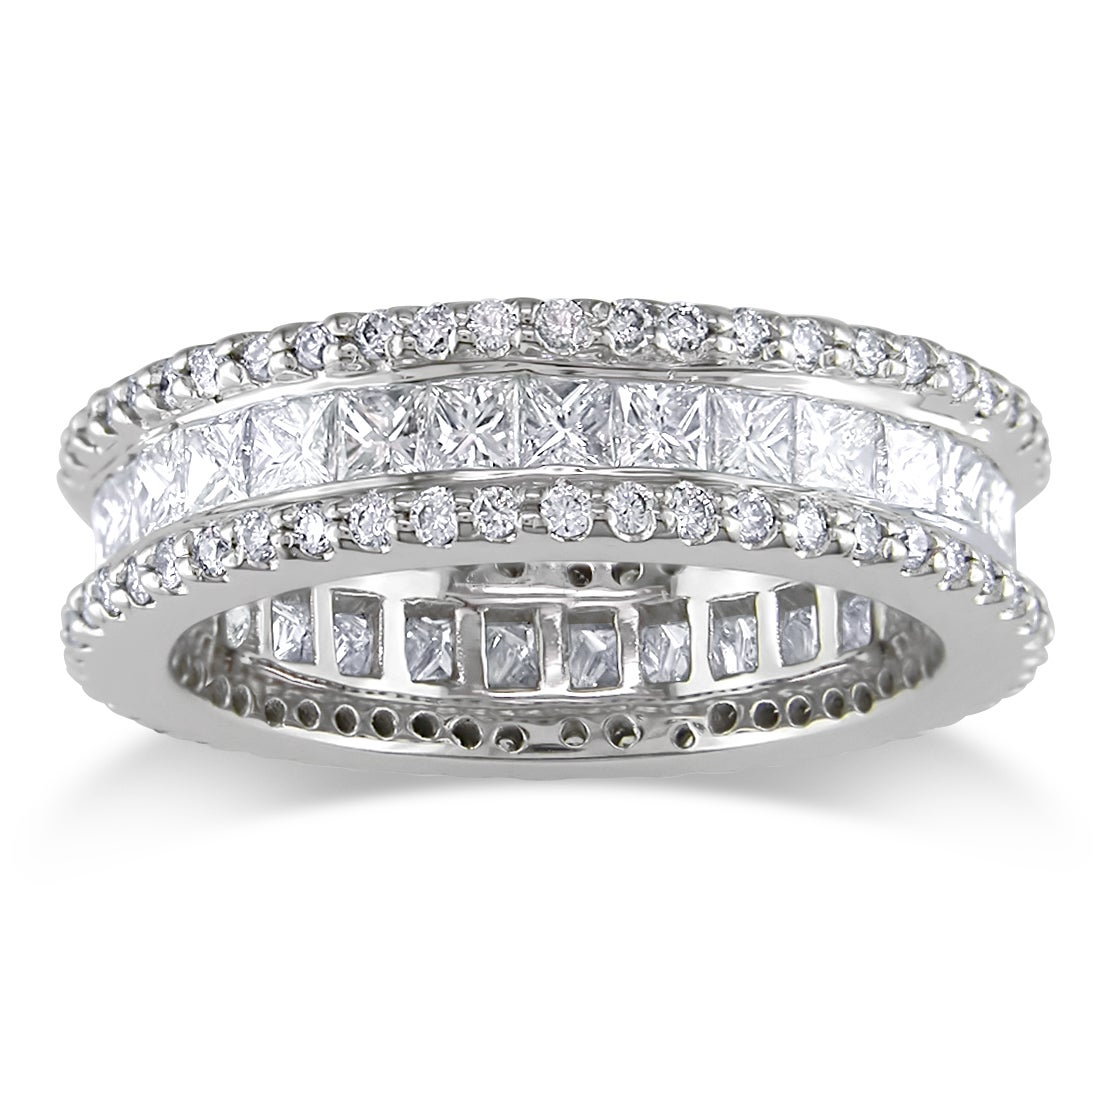 Miadora 18k White Gold 2-3/8ct TDW Diamond Eternity Ring     (Size 8)